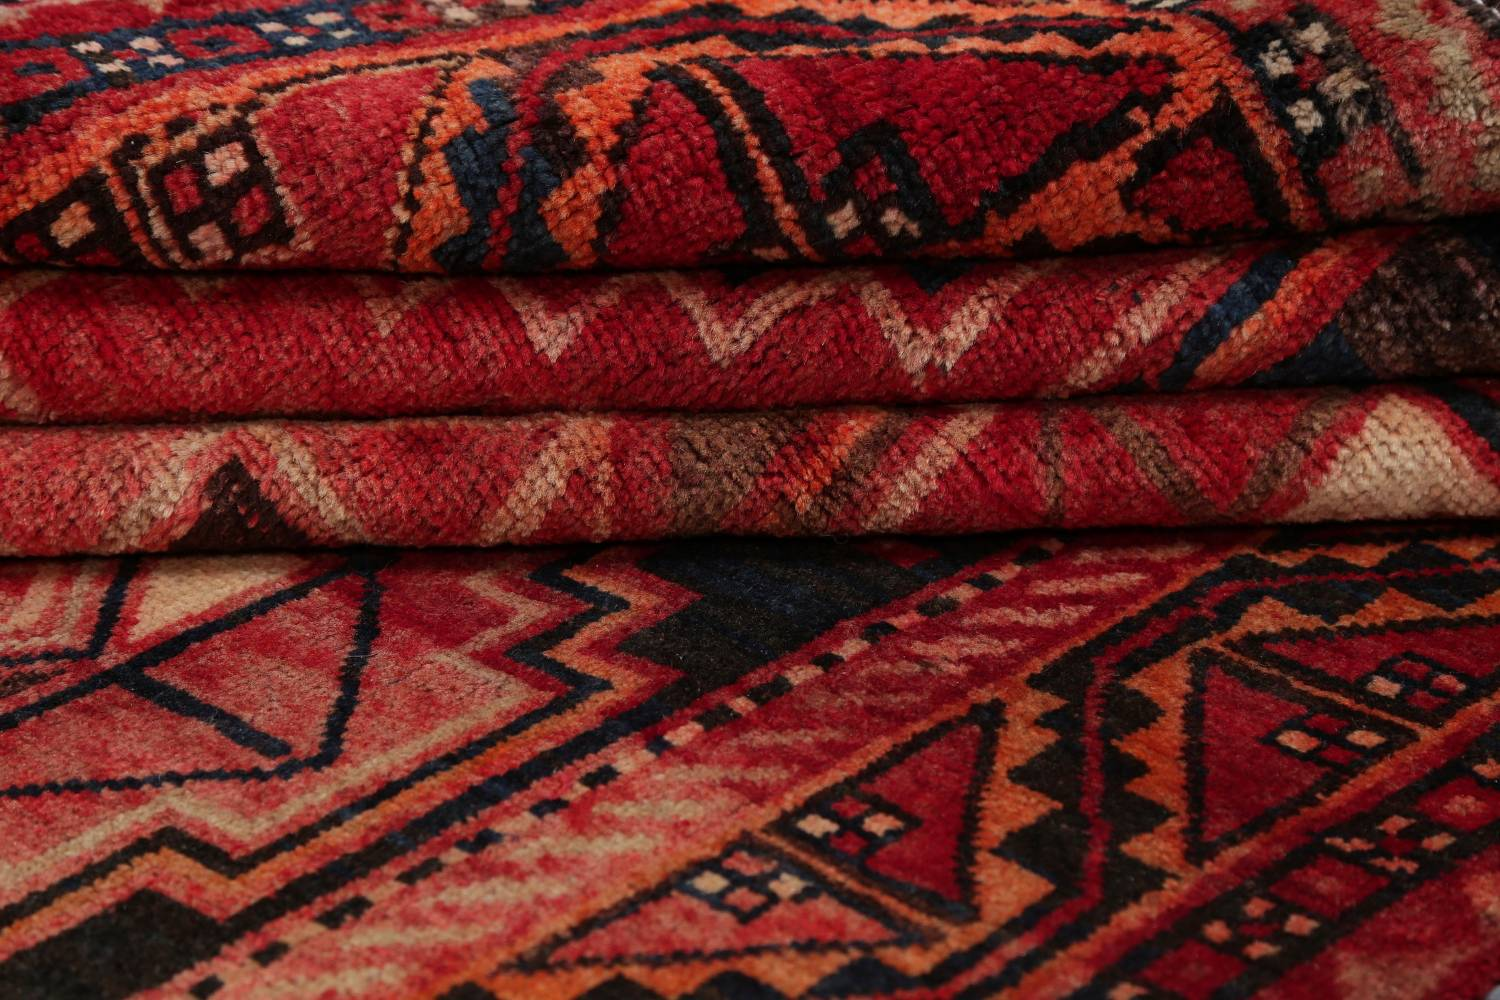 One of a Kind Antique Geometric Lori Persian Hand-Knotted 5x9 Wool Area Rug image 22